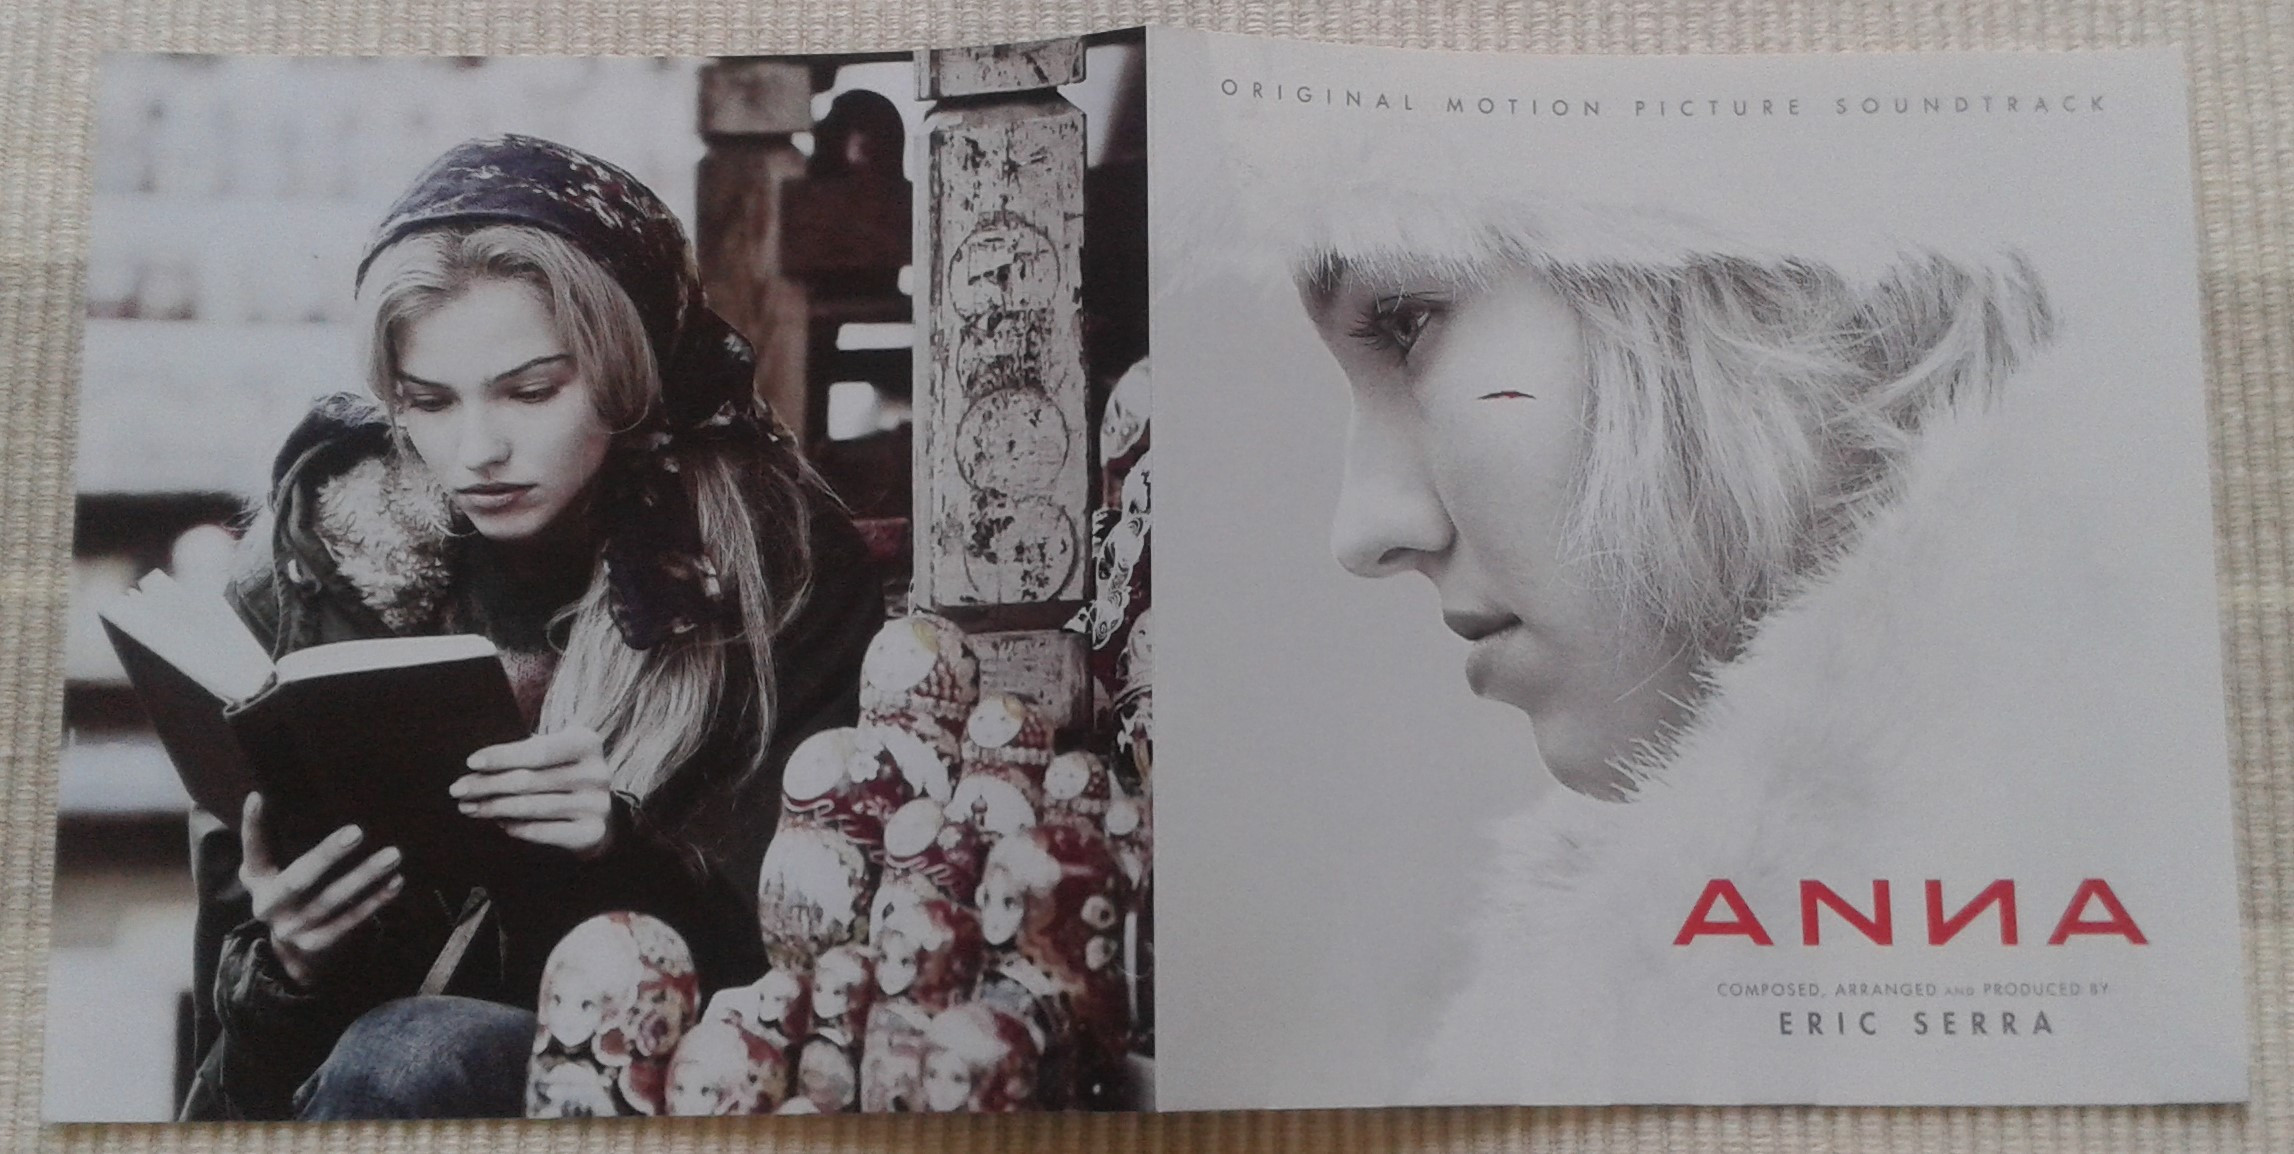 Anna - soundtrack (booklet 1)